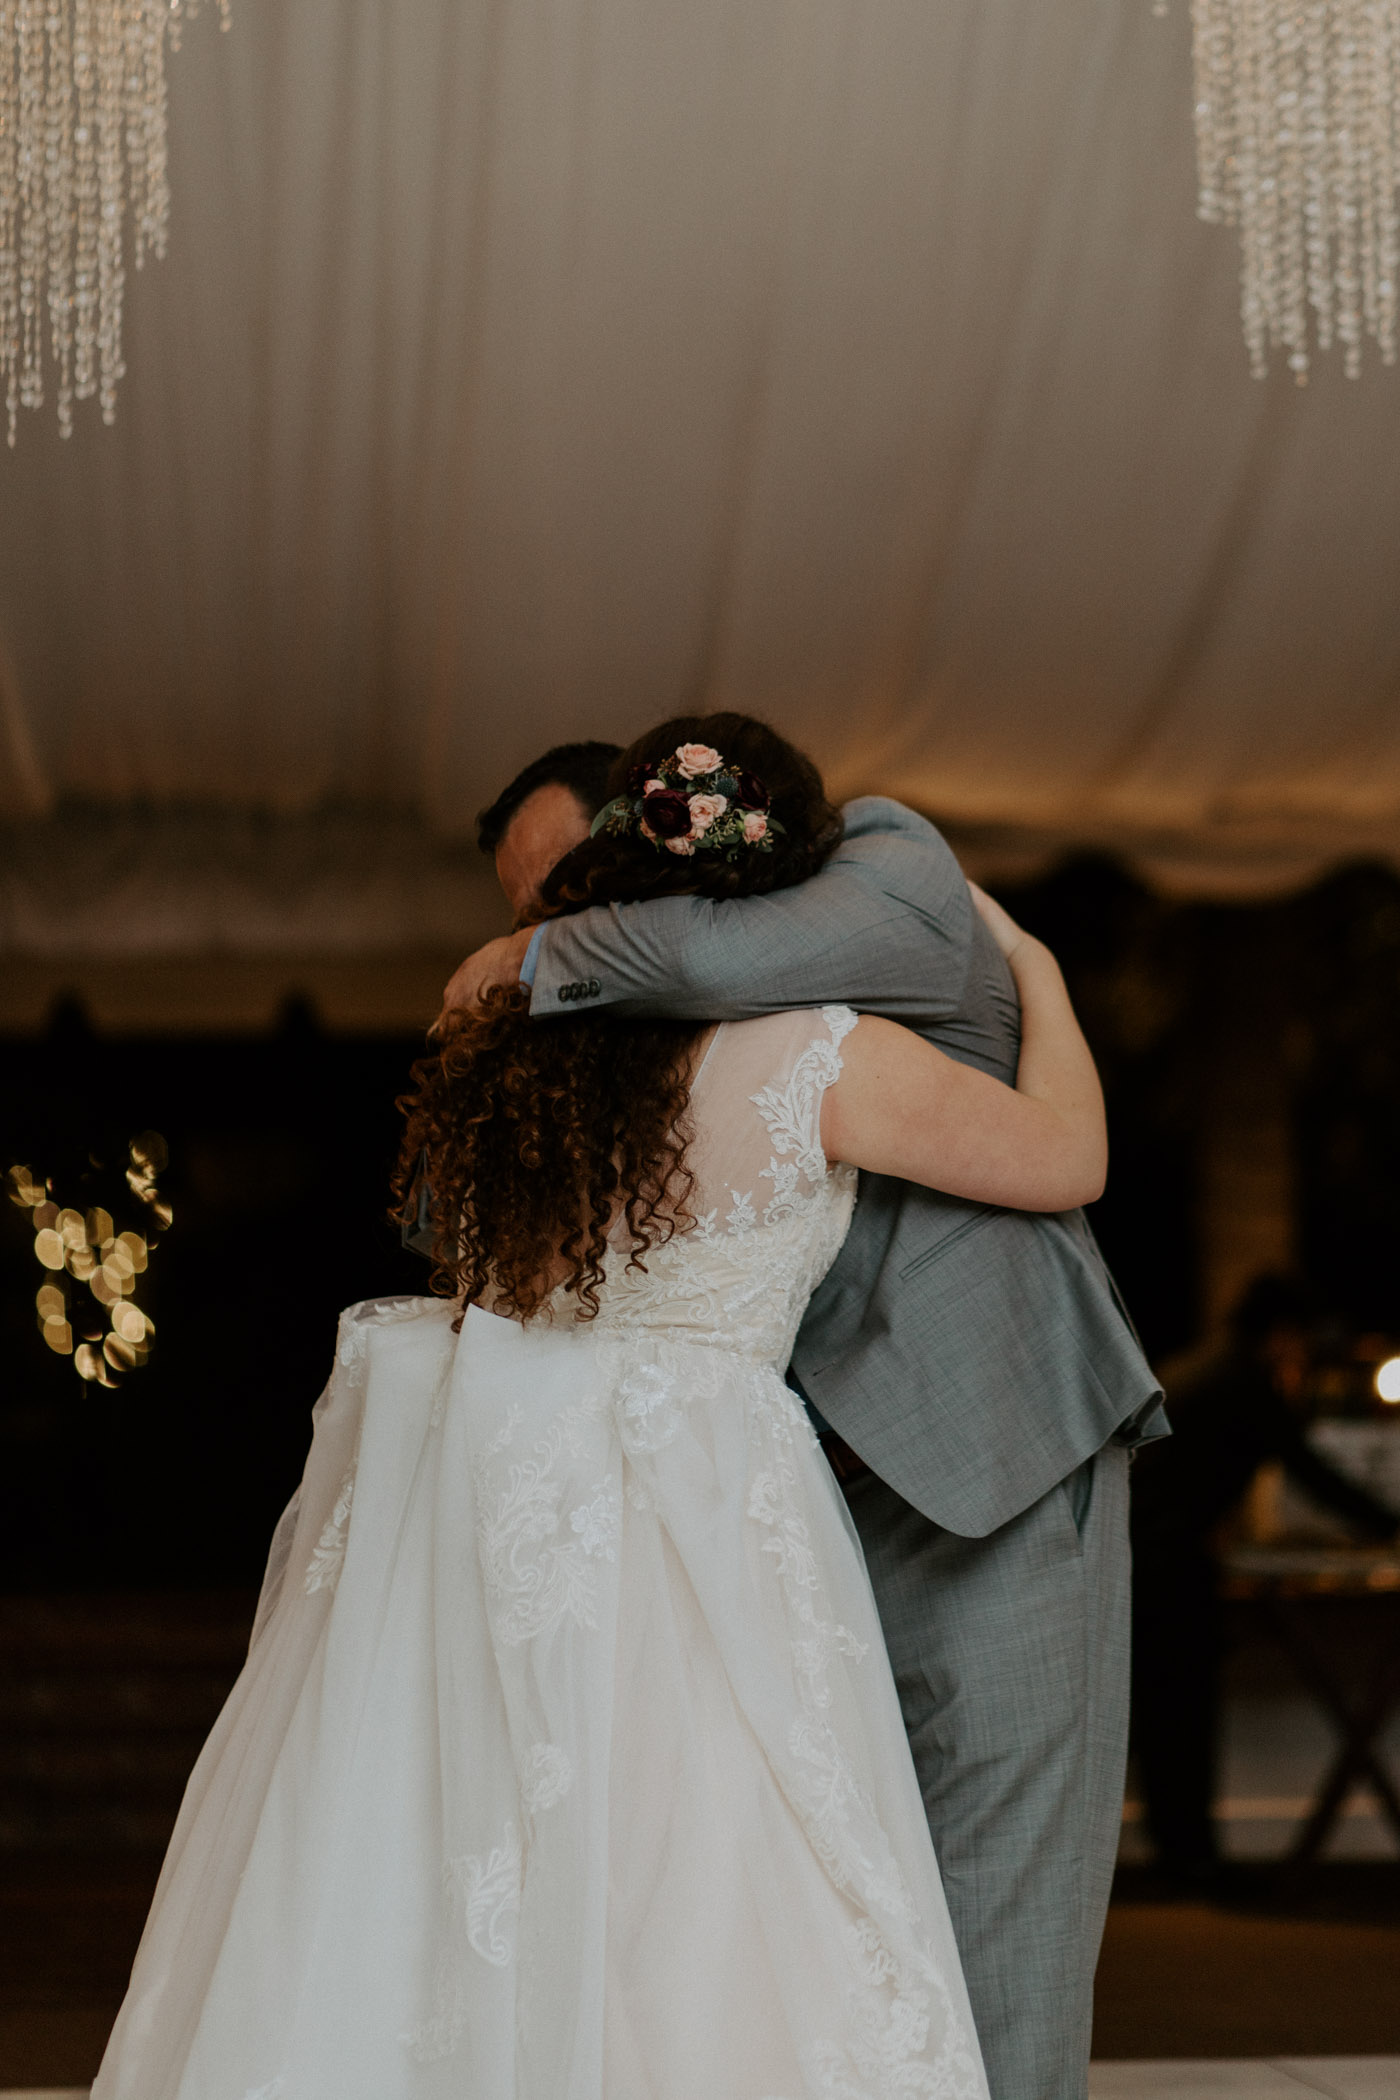 Bride hugging her father during their wedding reception